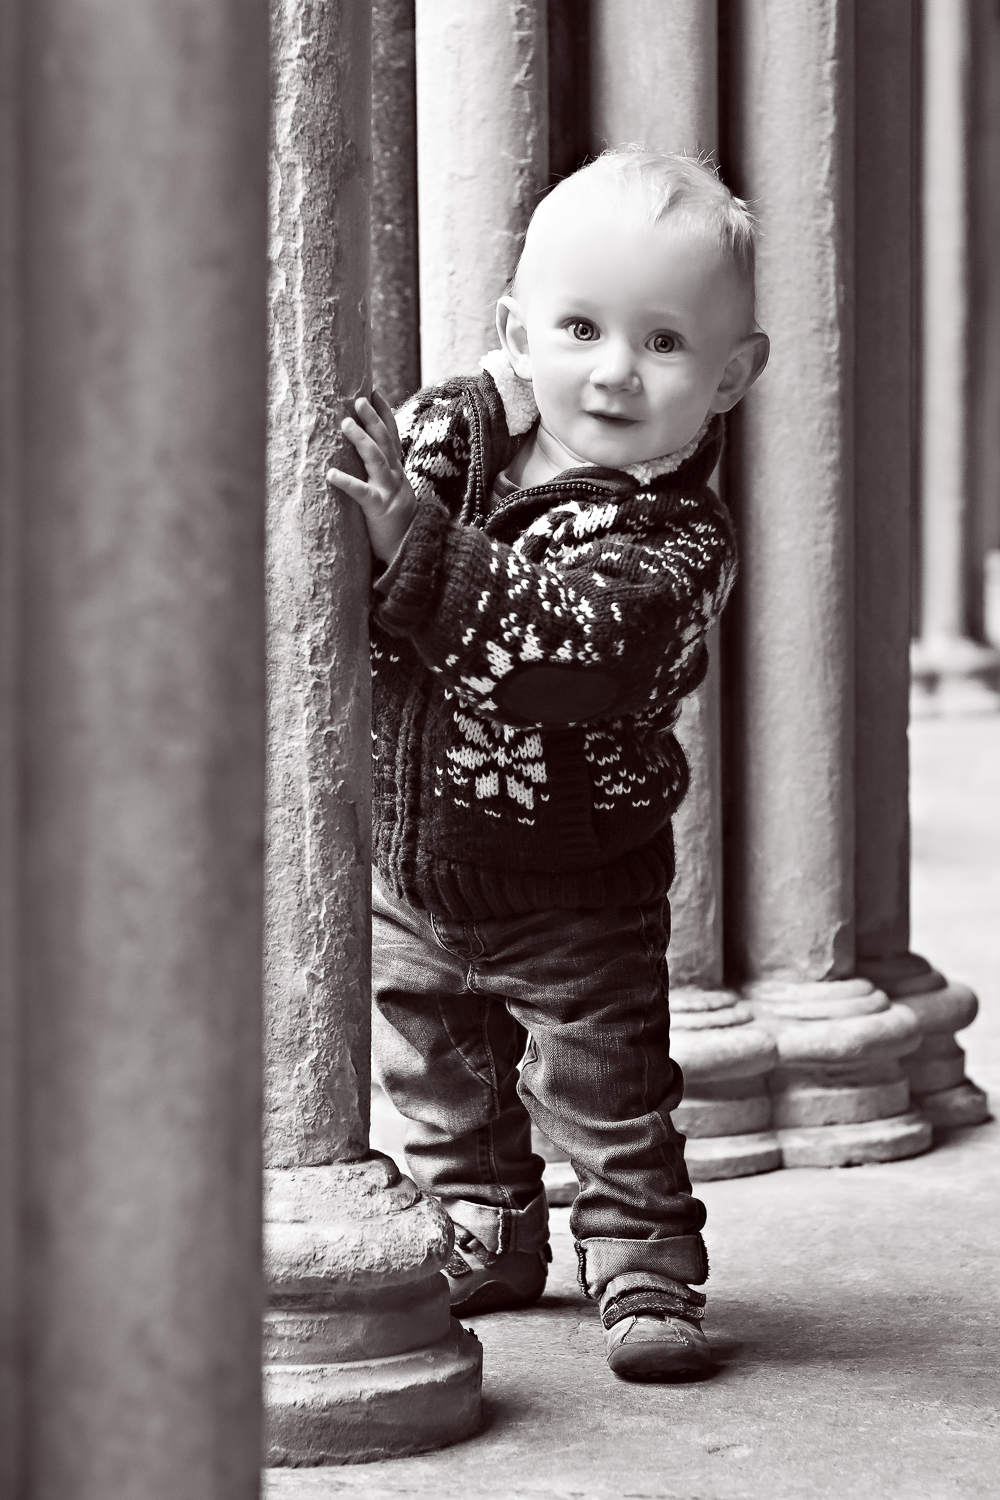 A cute blonde toddler peeks his head around a column in the cloisters at Salisbury Cathedral